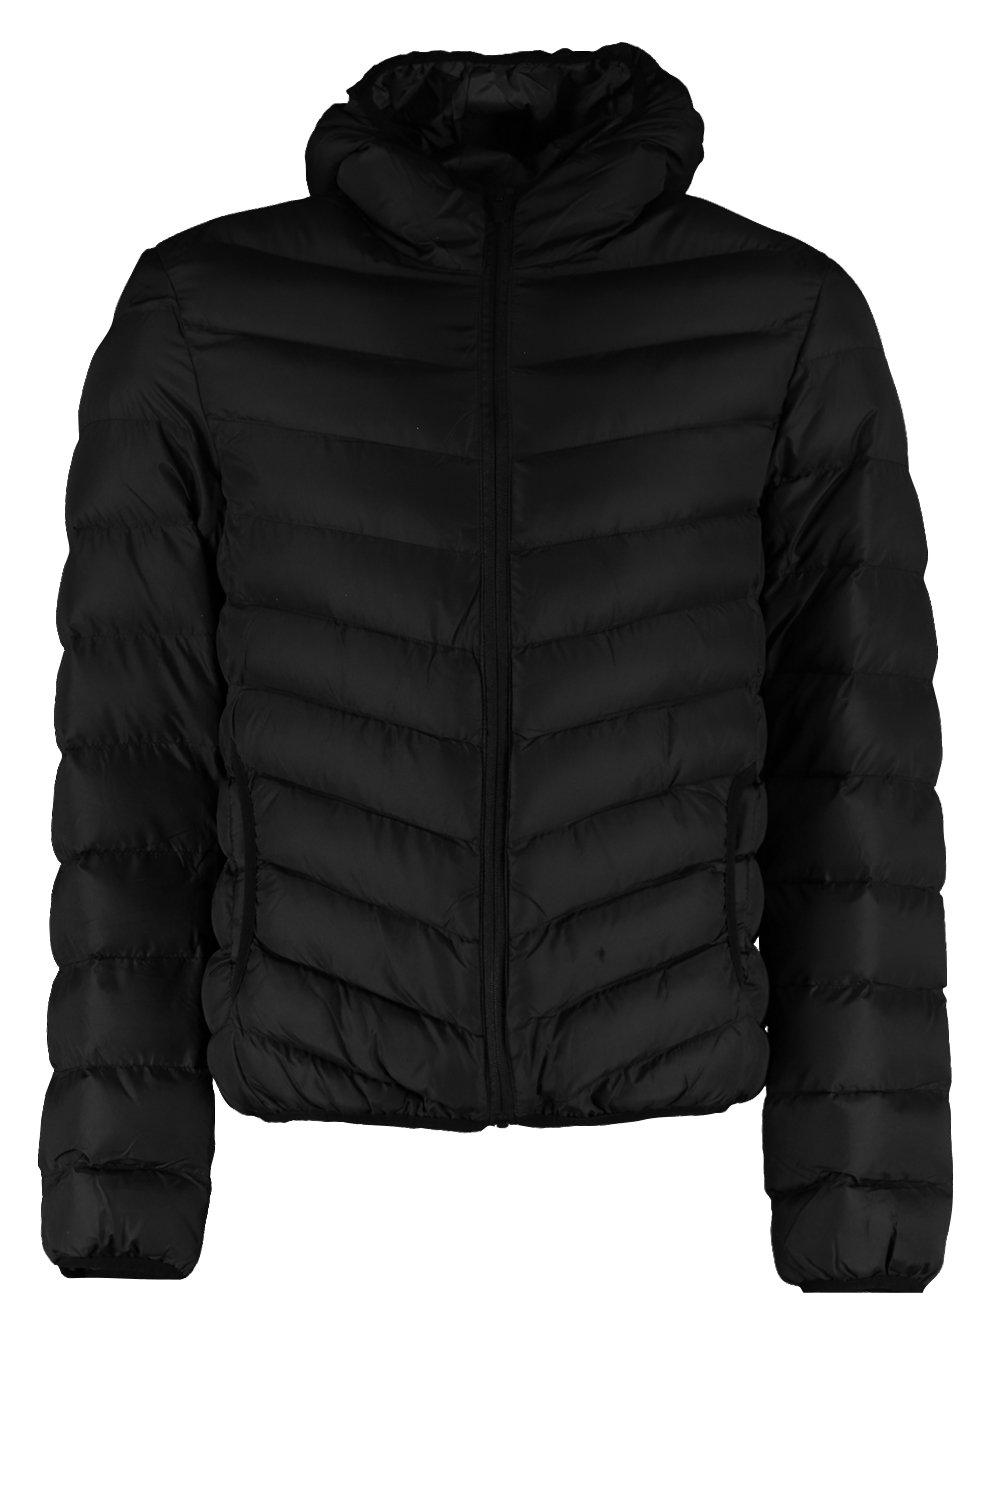 boohooMAN black Quilted Zip Through Jacket With Hood